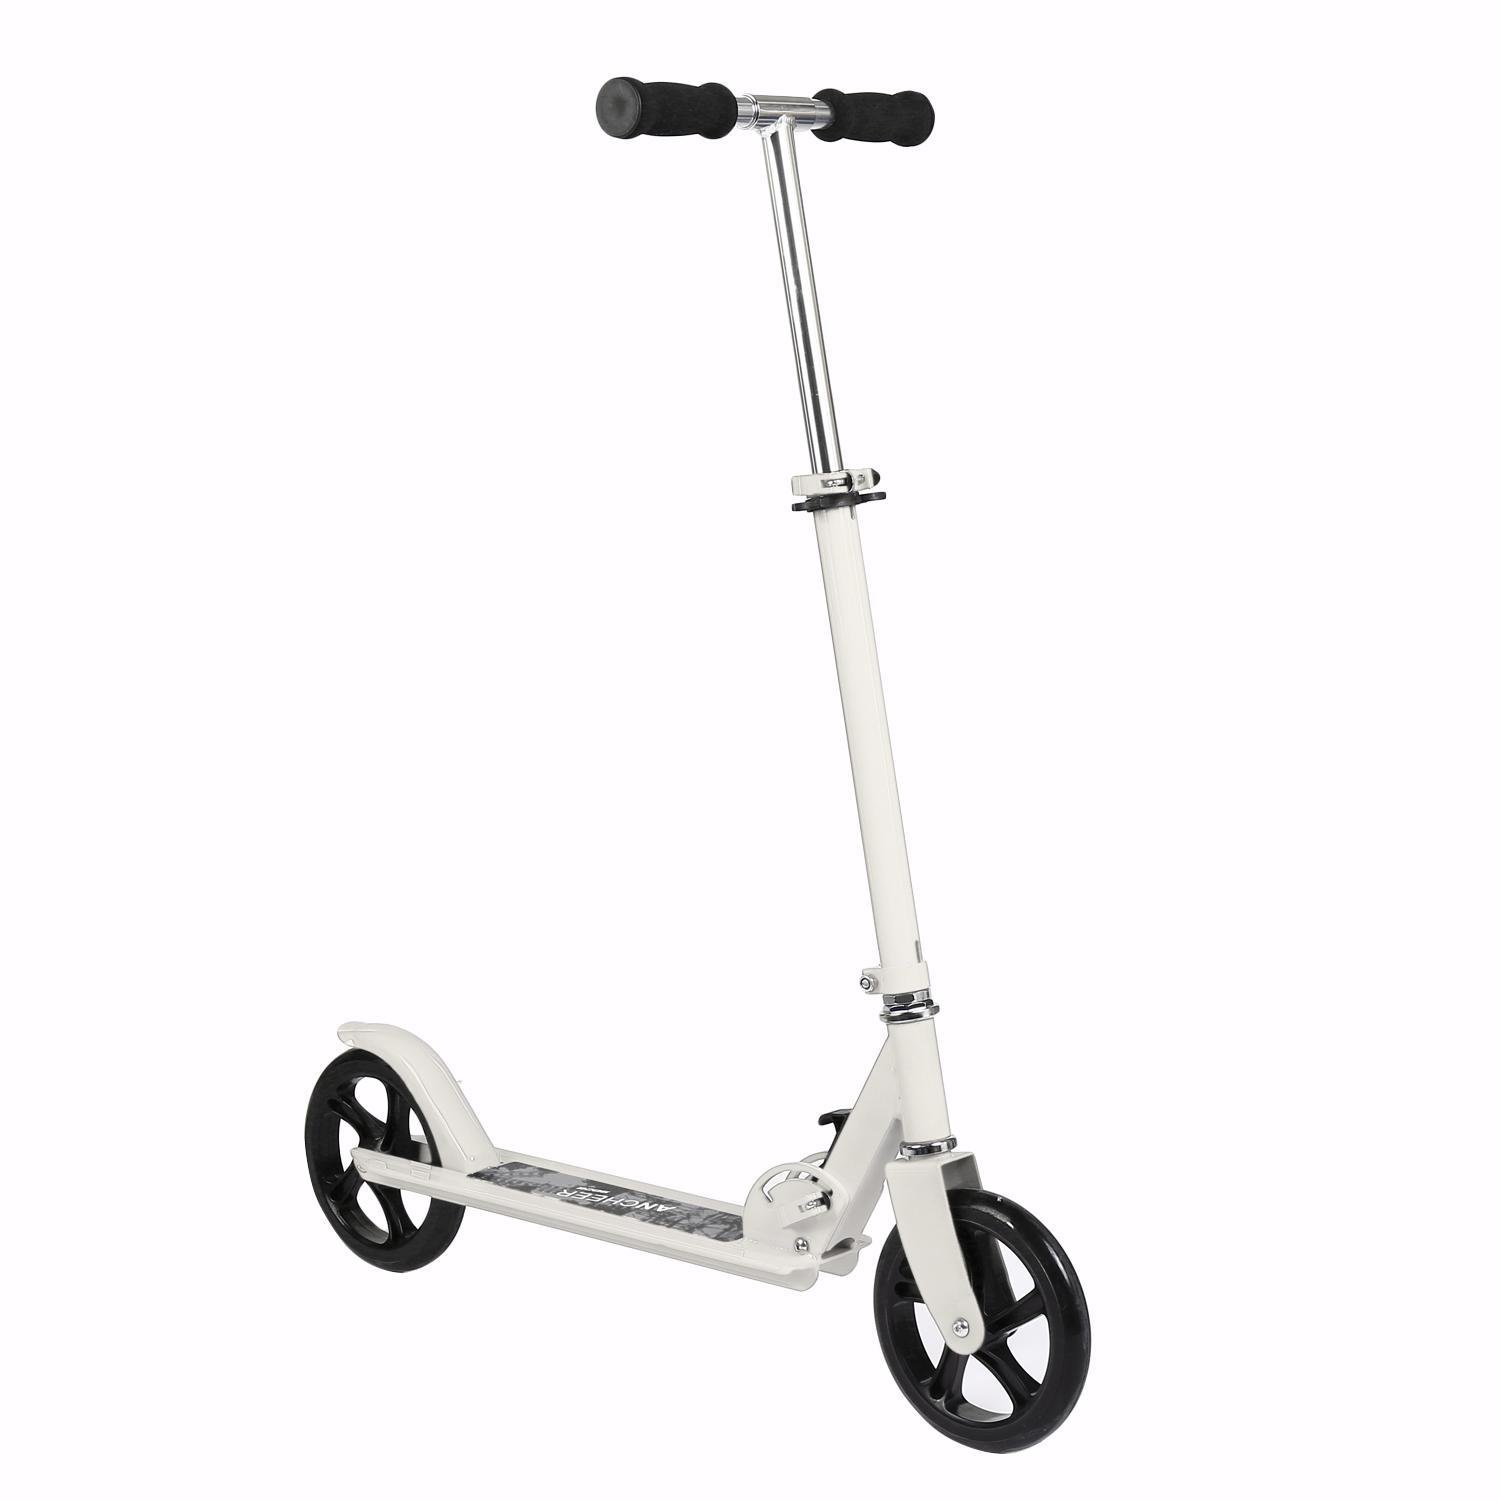 Adult Easy Folding Kick Scooter, 3 Levels Adjustable Height 2-Wheel Scooter for 12 13-50 Years Old , US STOCK